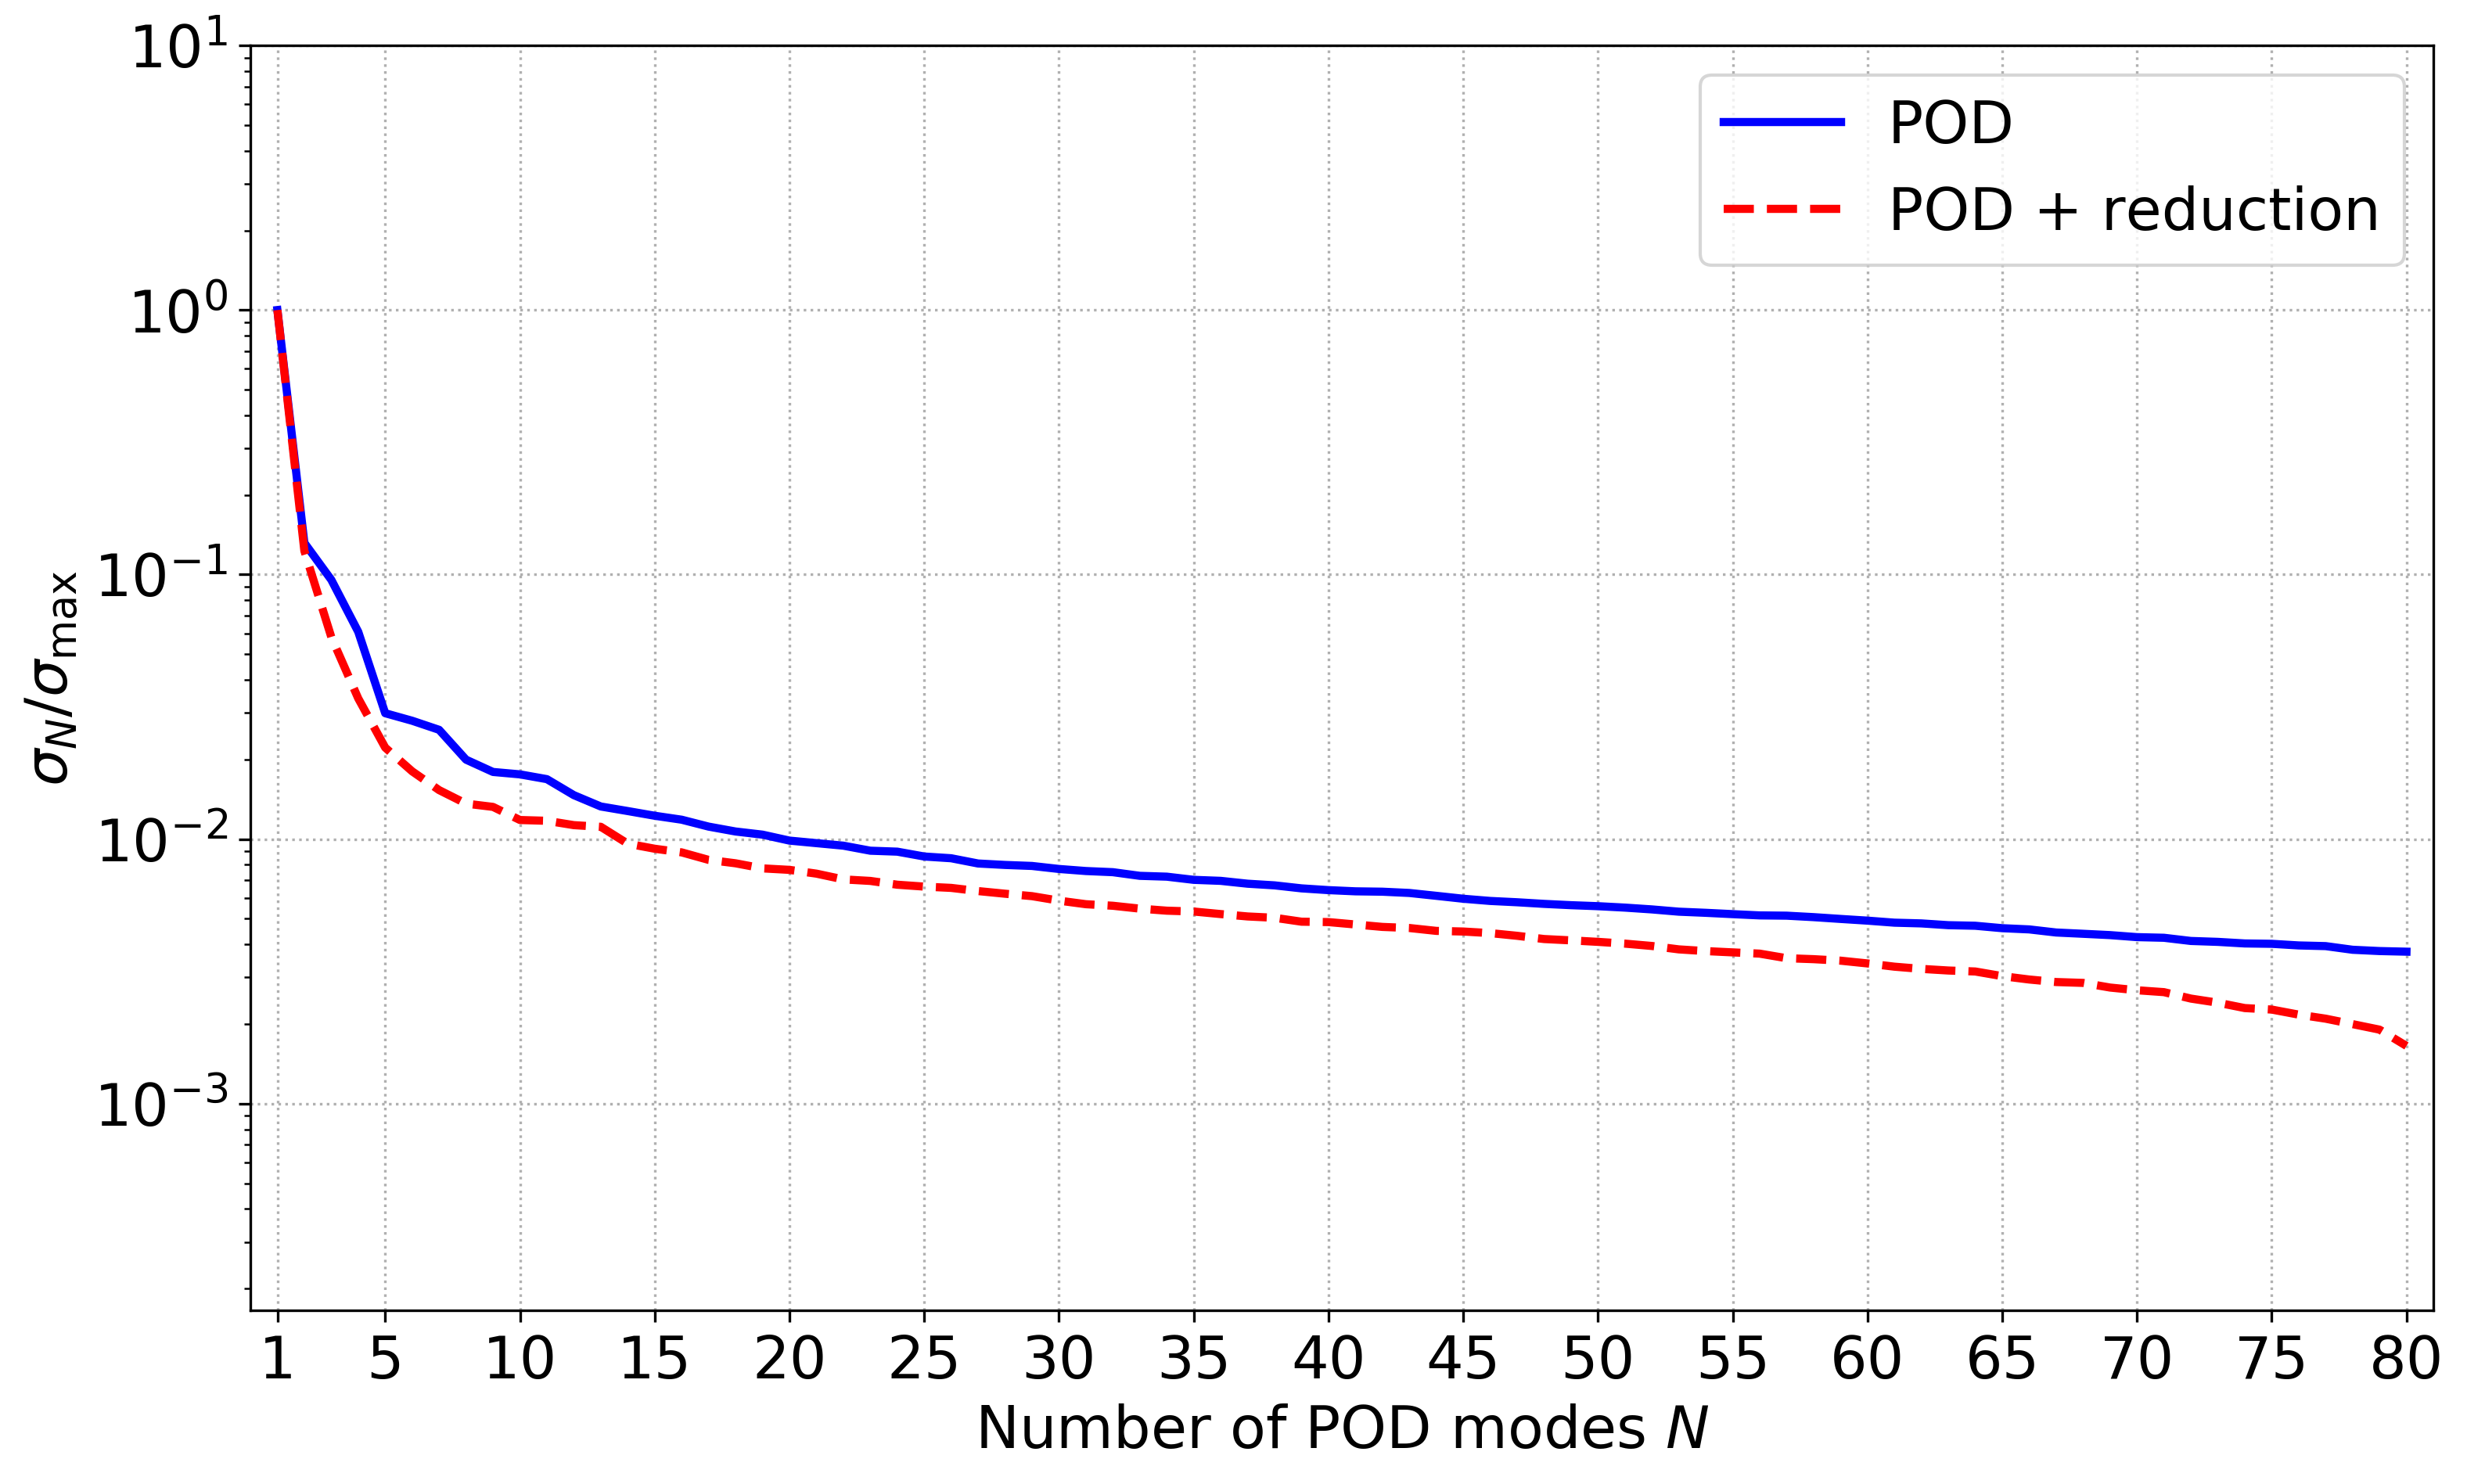 POD singular values decay as a function of the number of modes. The blue line corresponds to the original sampling in the full parameter space, while the red dotted line, which identifies the POD+reduction approach, corresponds to the sampling in the new reduced parameter space.